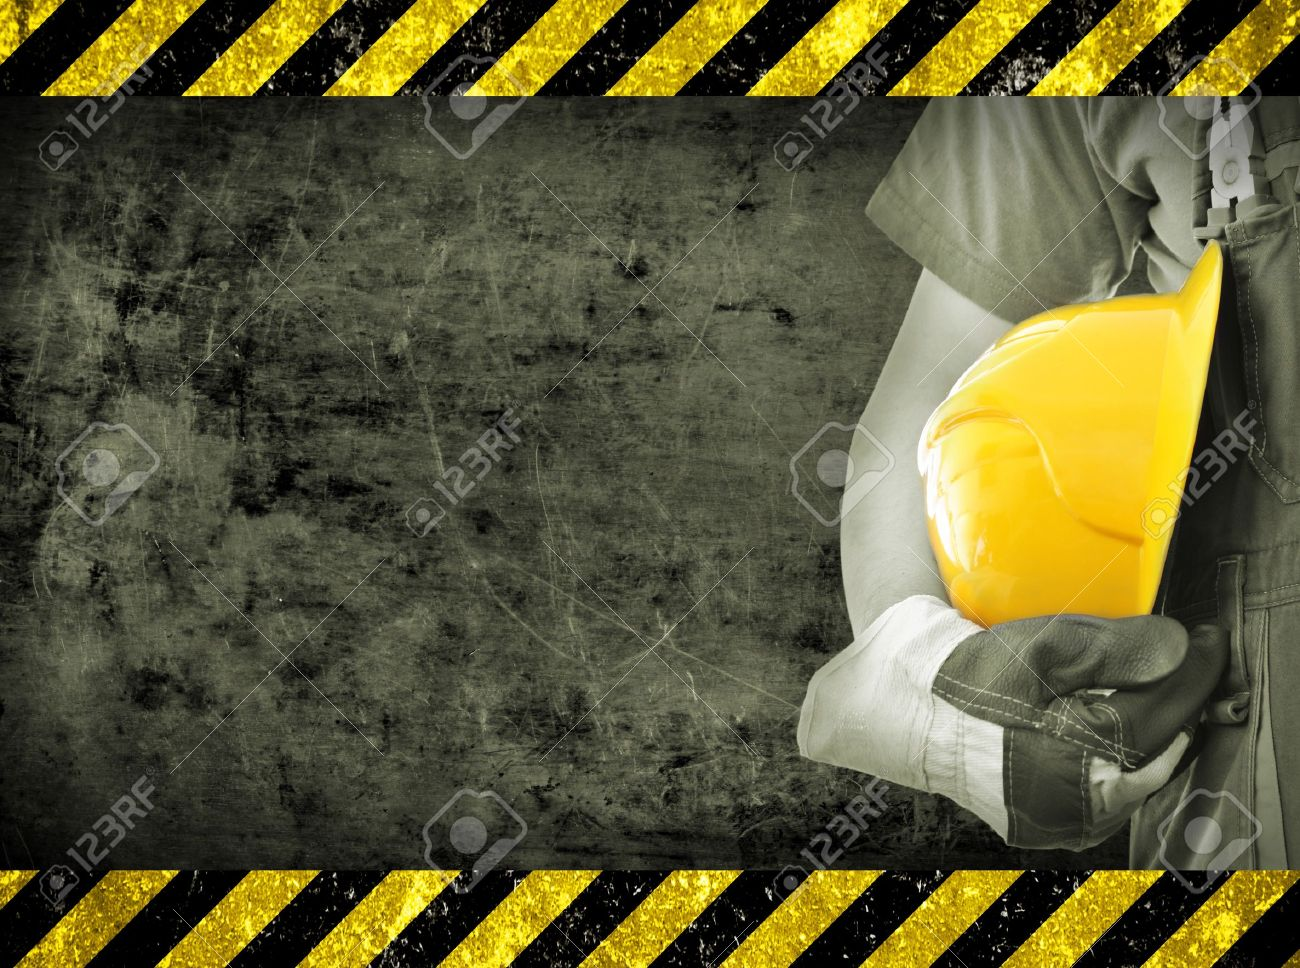 safety-background-images-7